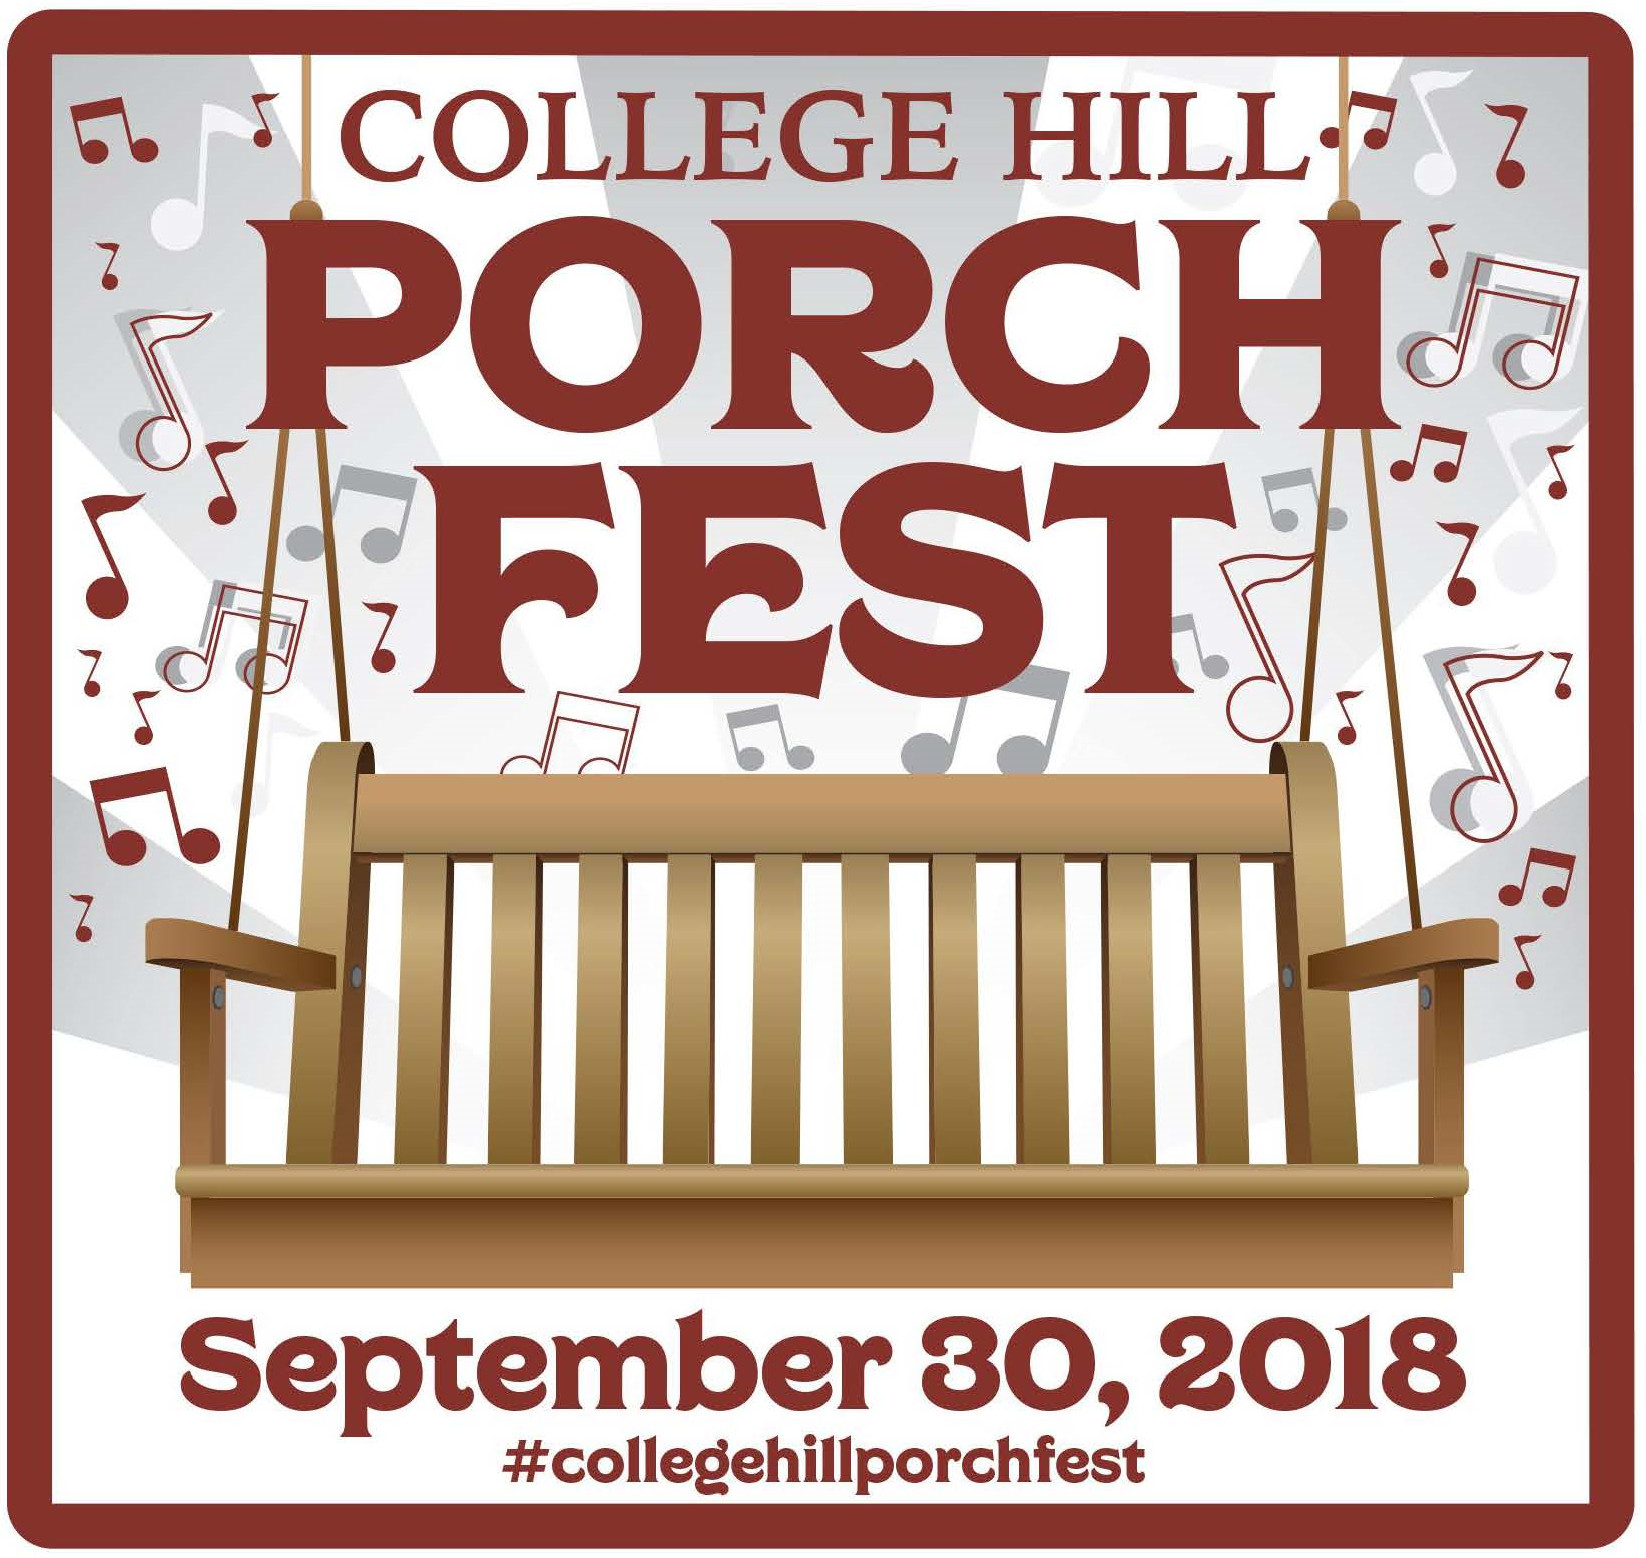 College Hill Porchfest